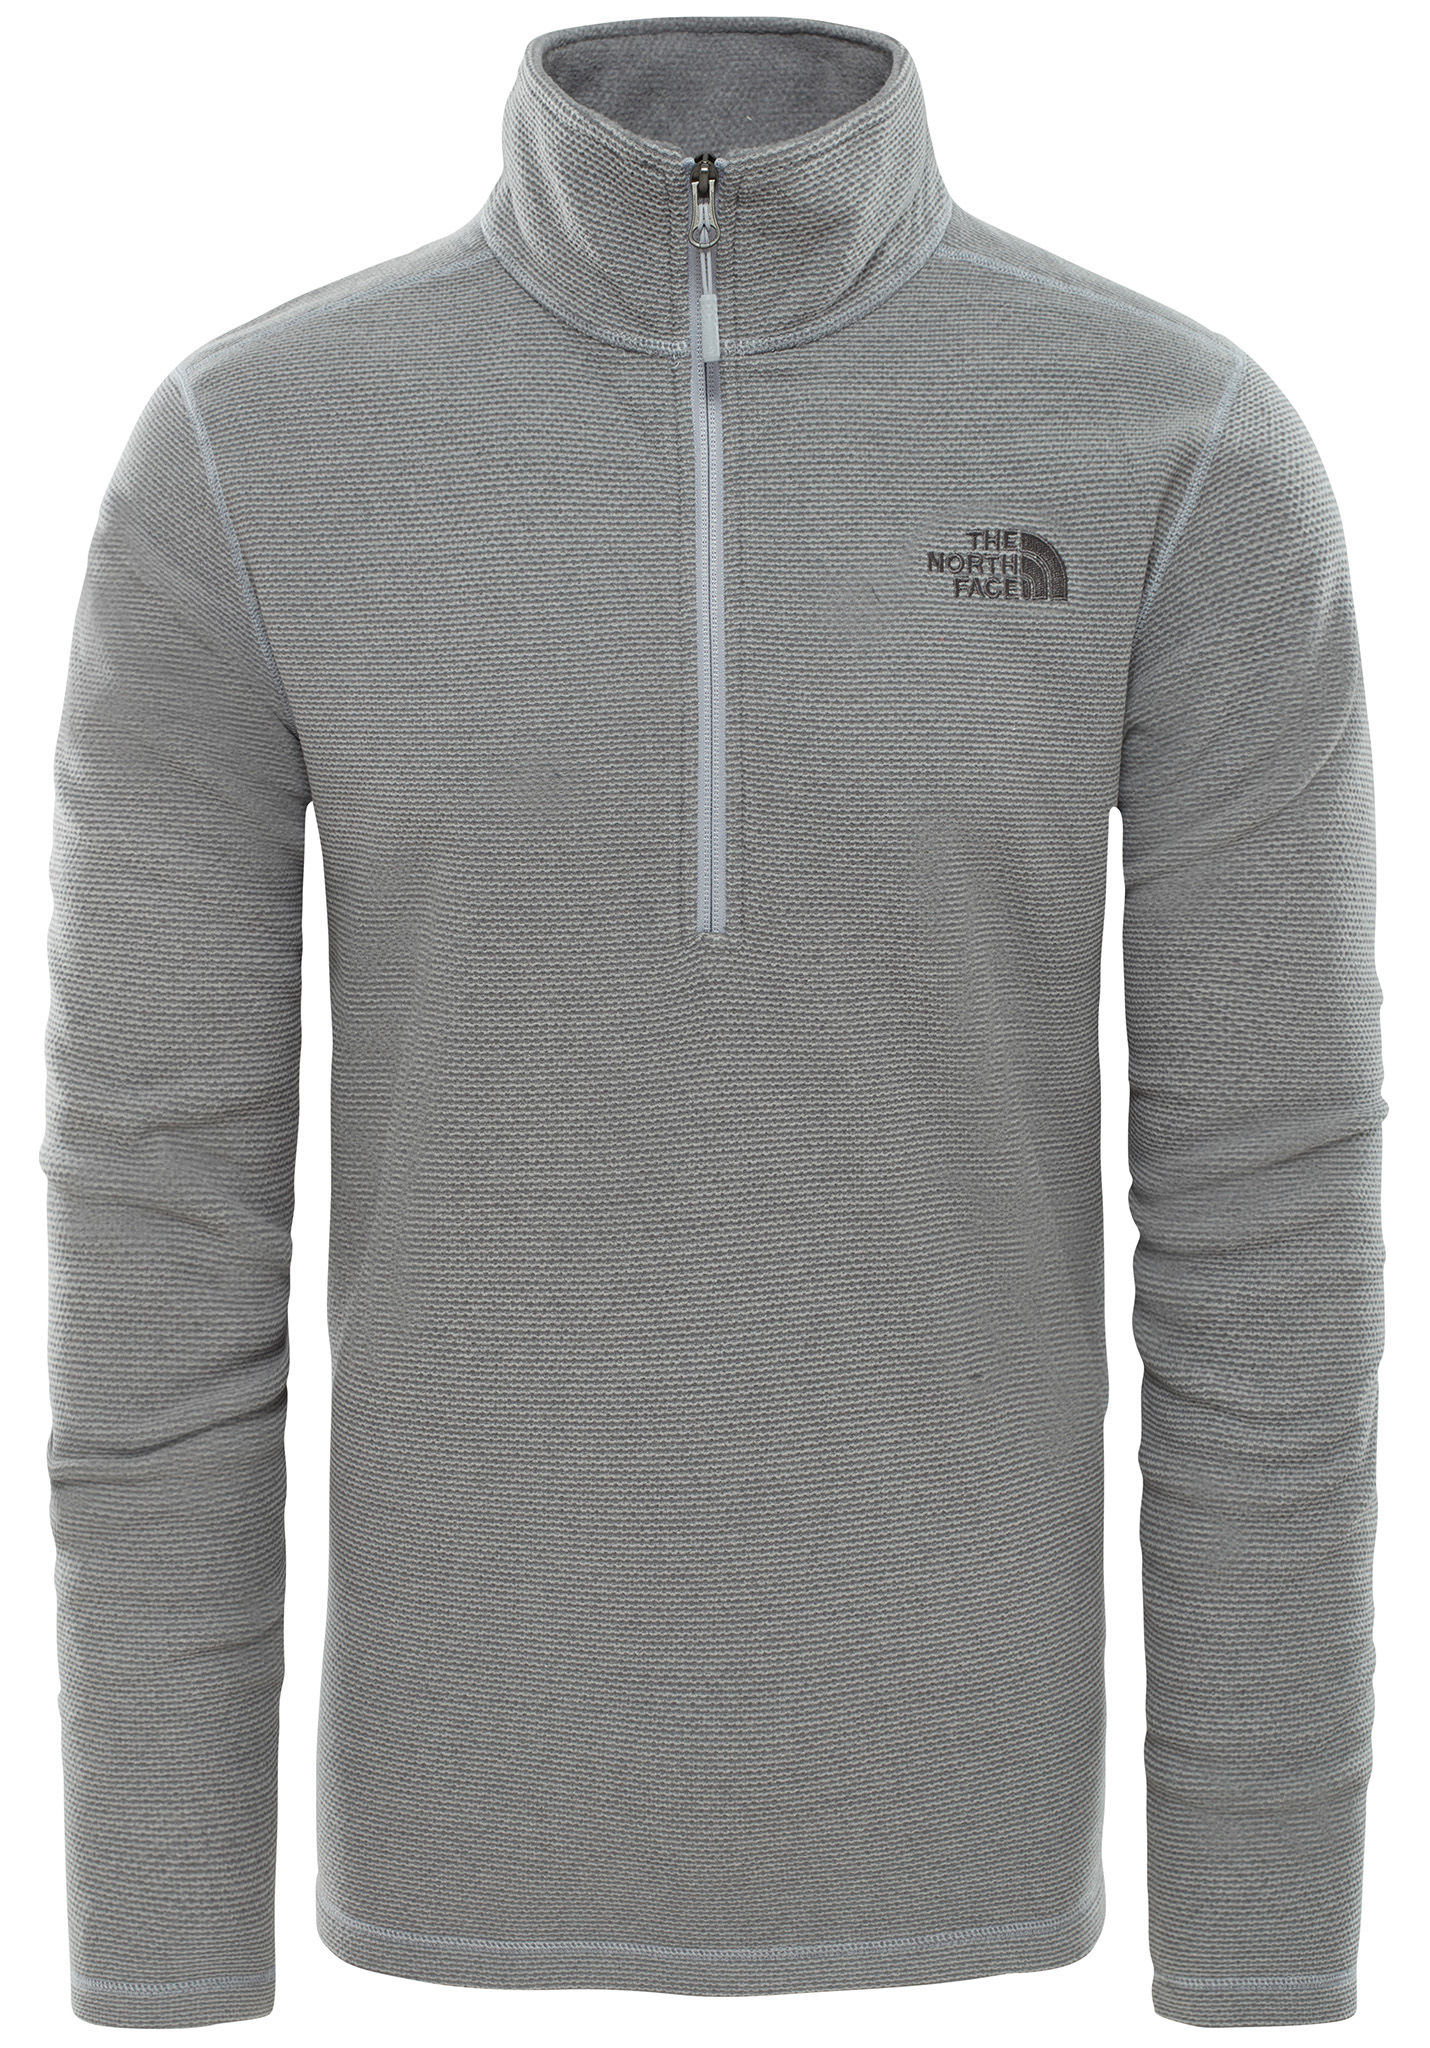 THE NORTH FACE Texture Cap Rock - Maglione in pile per Uomo - Grigio -  Planet Sports bcf1c85b6439